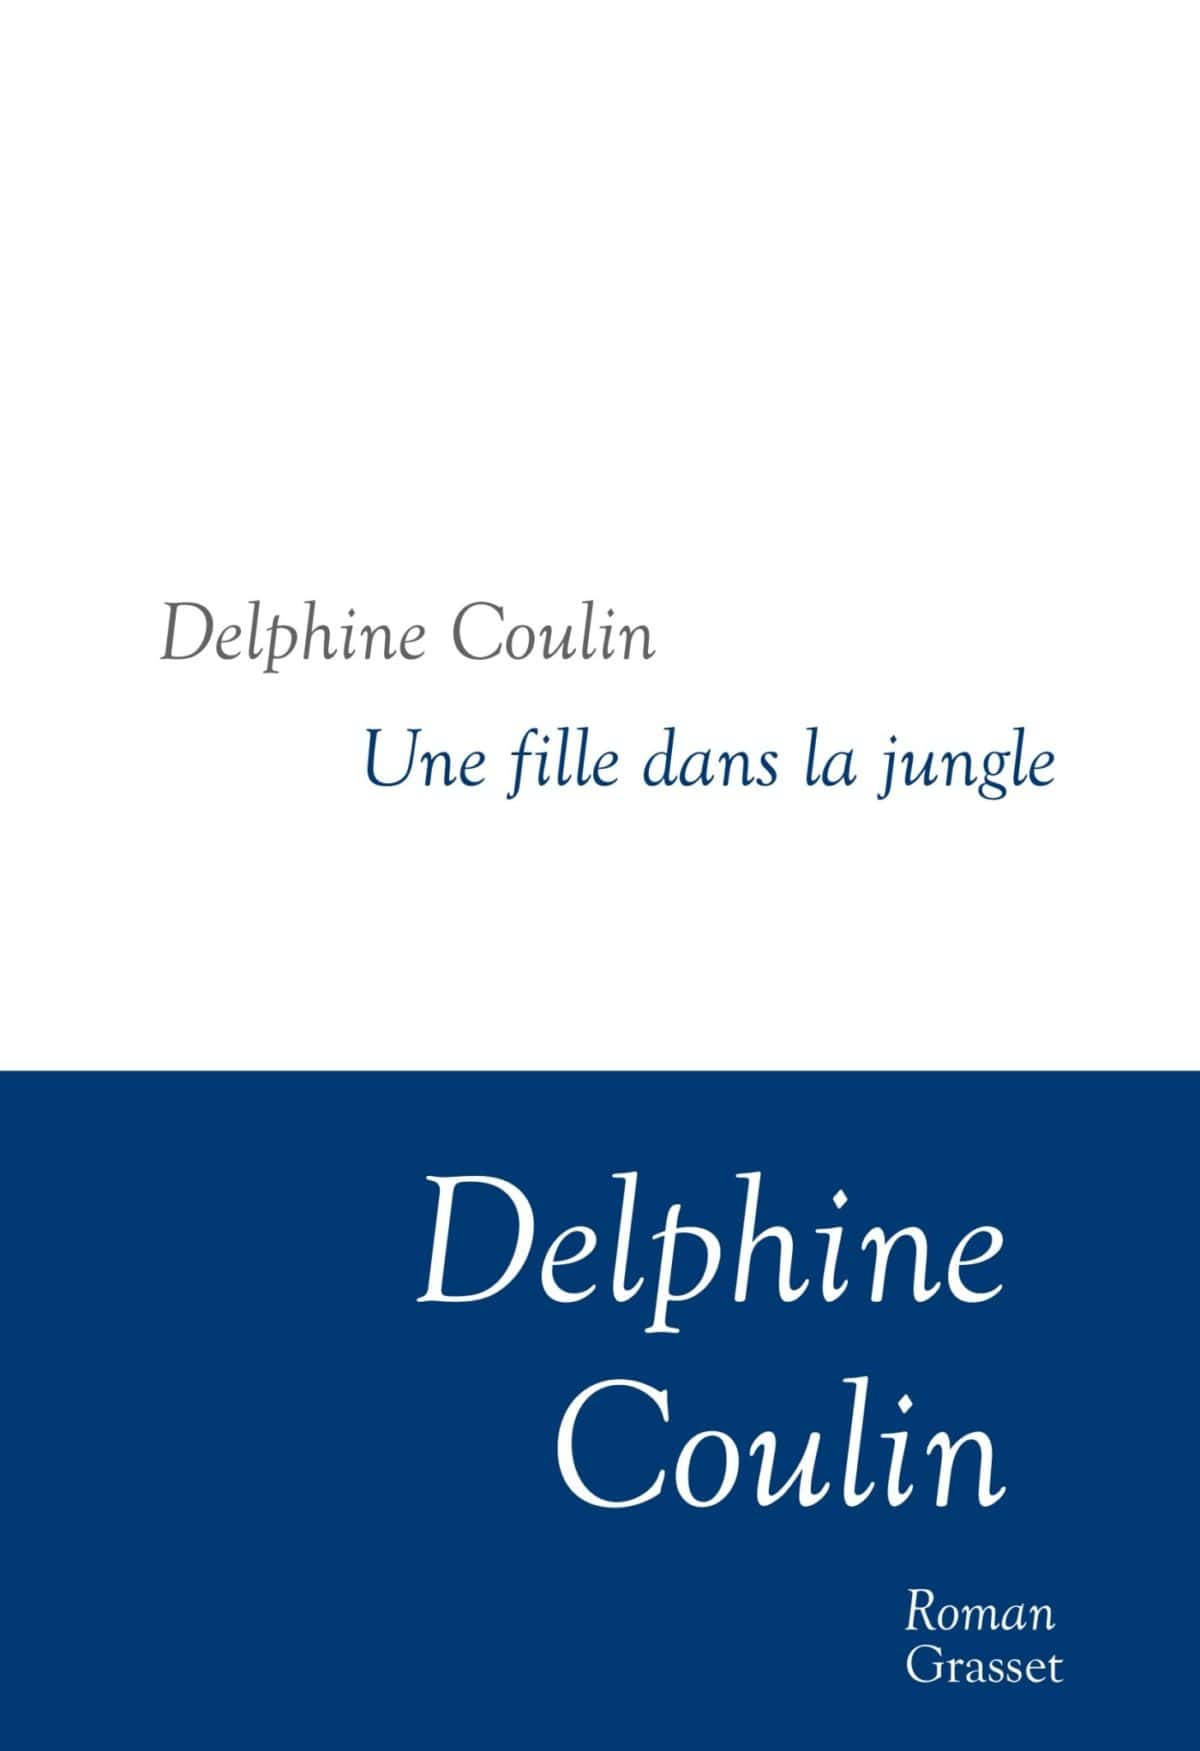 Une fille dans la jungle de Delphine Coulin